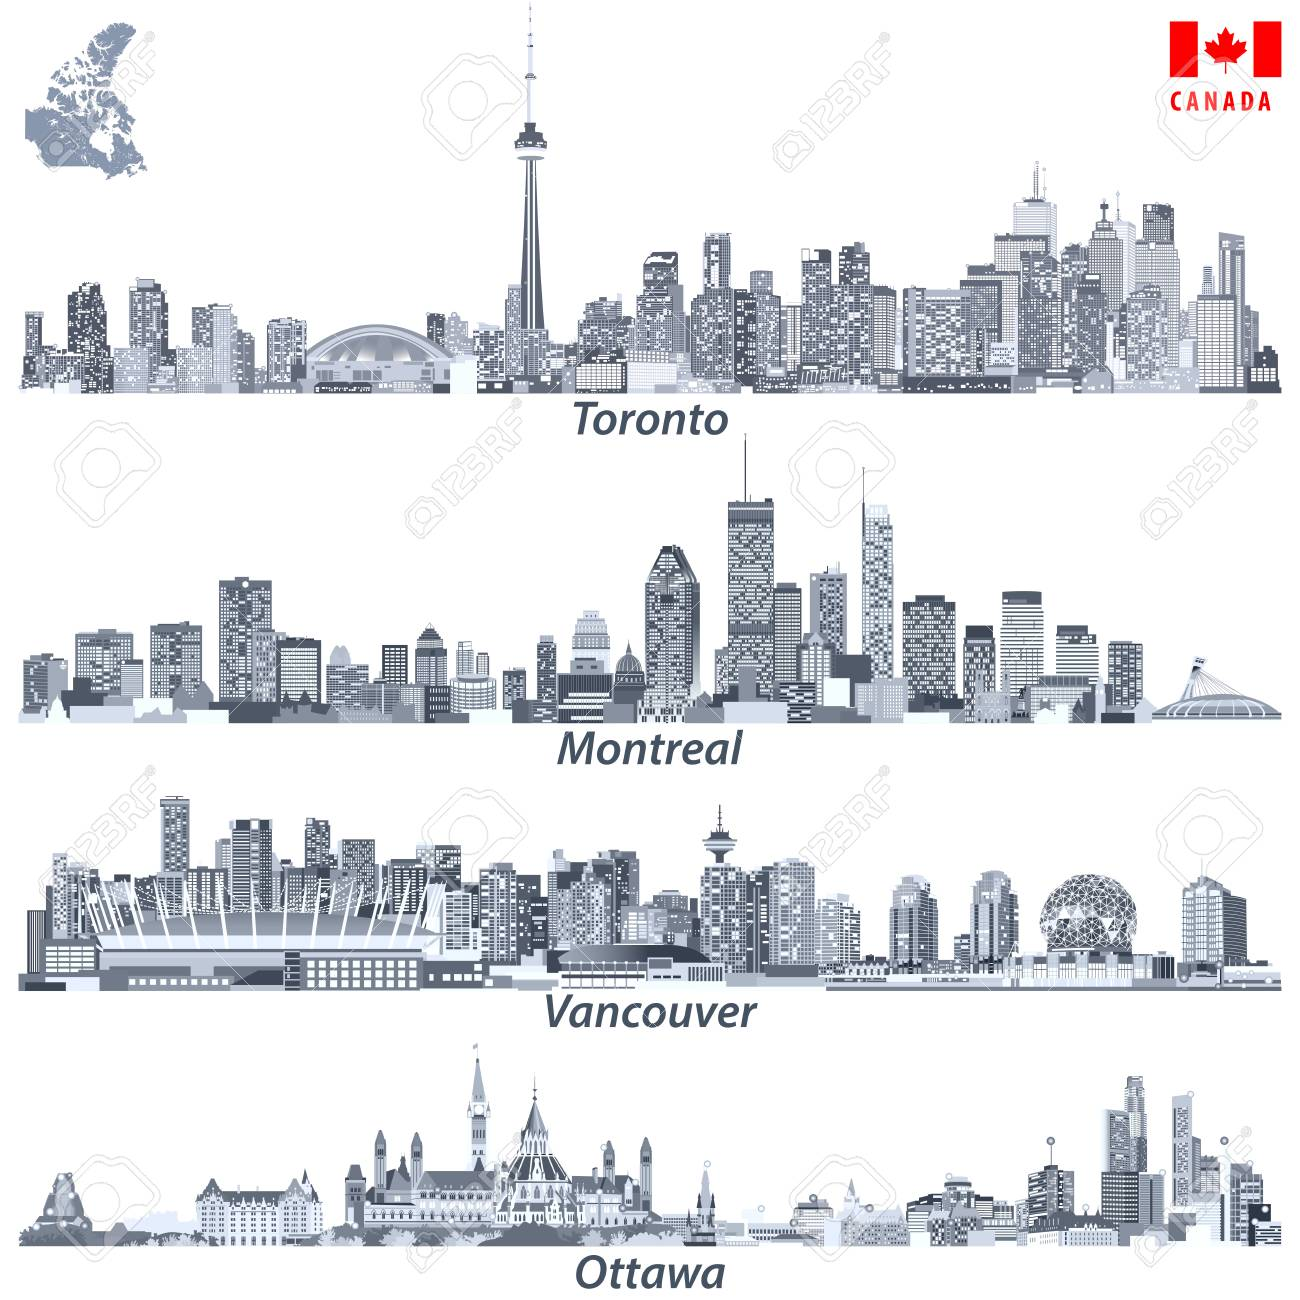 Map Of Canada Vancouver Toronto.Illustrations Of Canadian Cities Toronto Montreal Vancouver